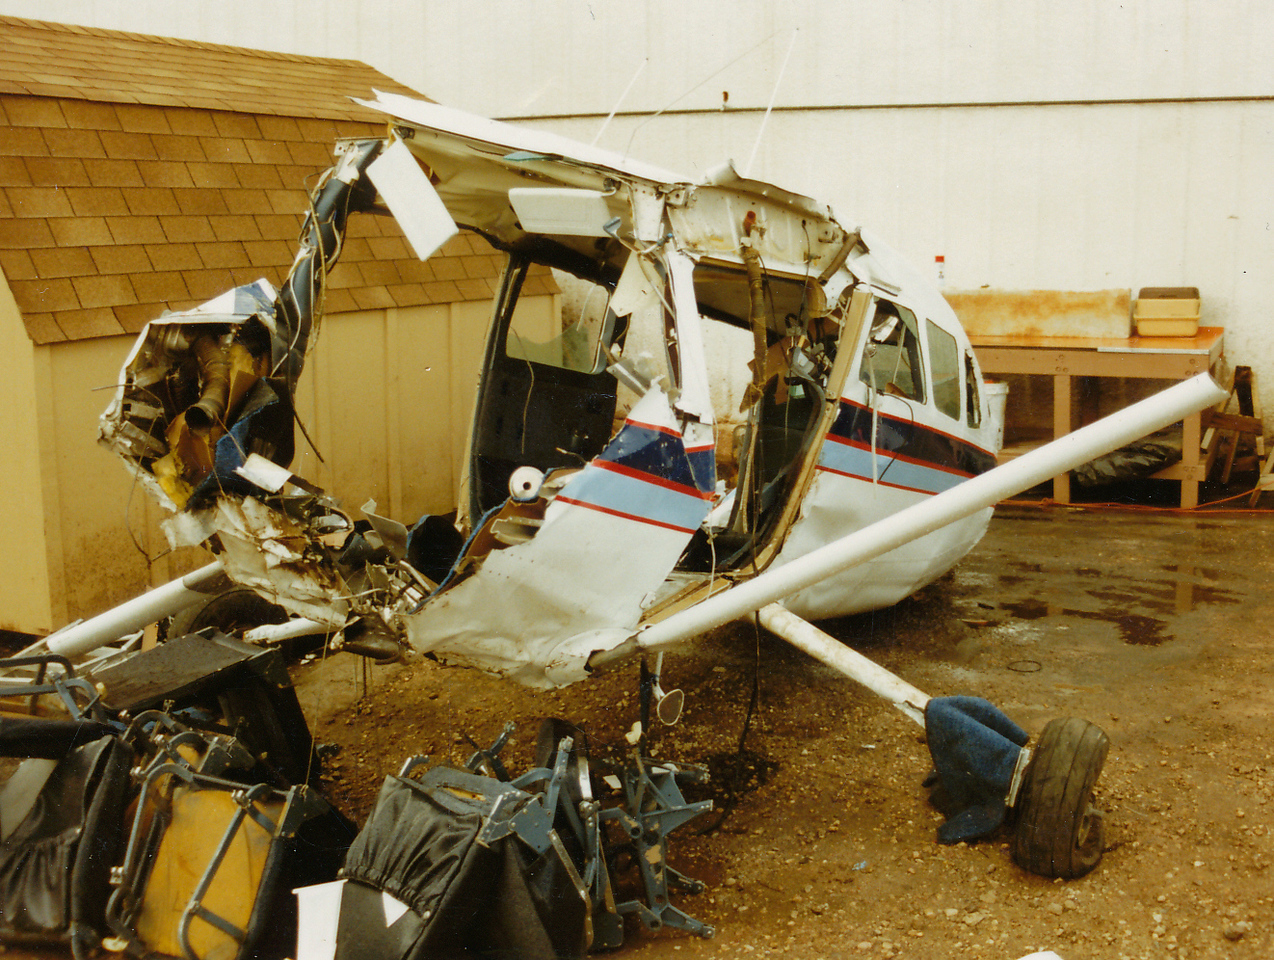 AIRCRAFT STORAGE - APRIL 1990<br /> <br /> The aircraft wreckage was recovered from the site and stored near the Grand Canyon Airlines Maintenance Hangar.